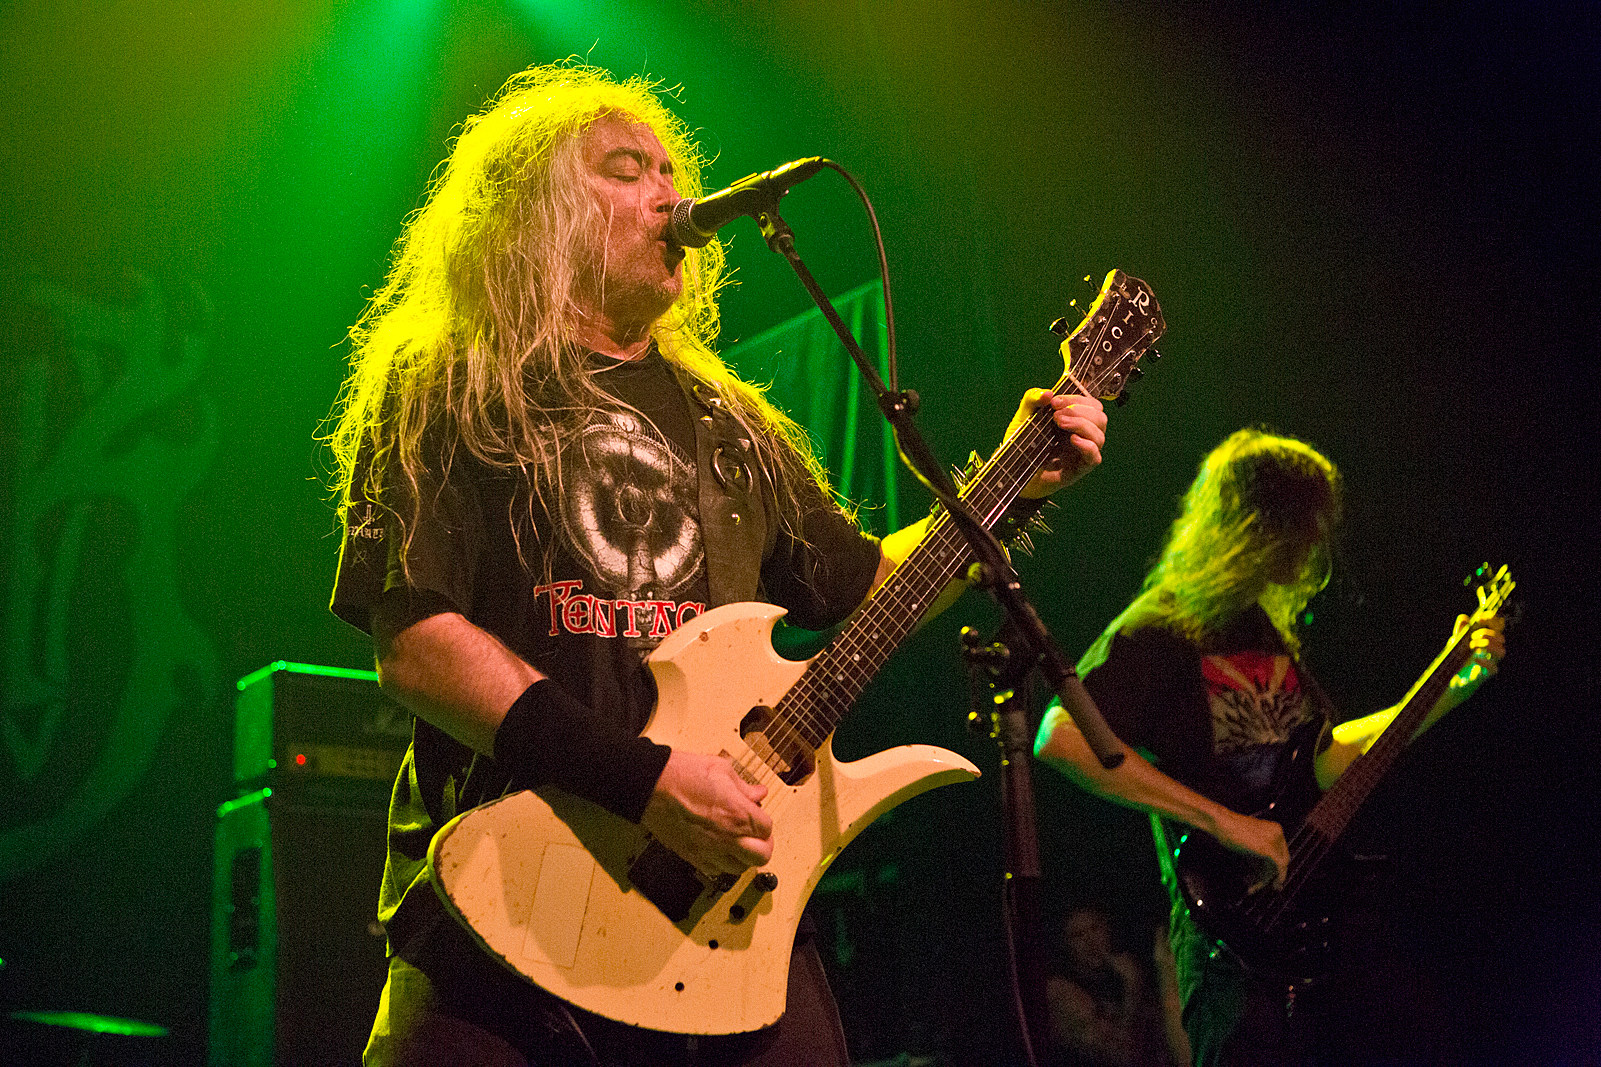 Incantation at Gramercy Theatre